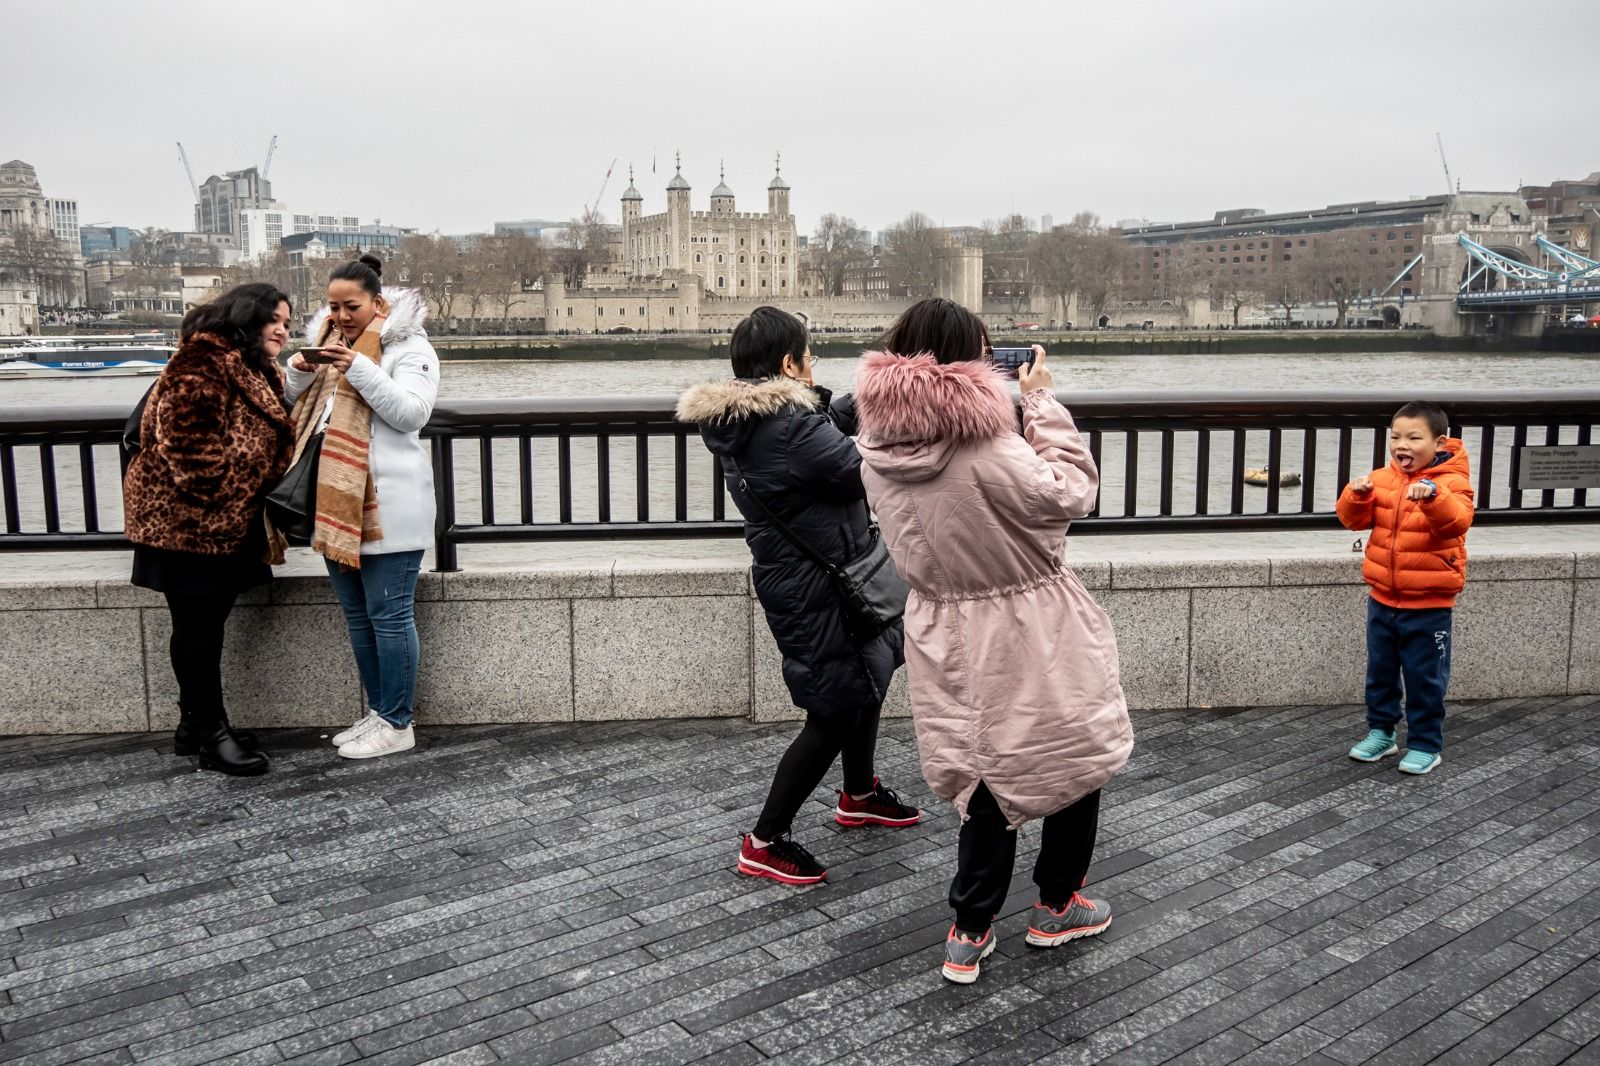 Street photography of tourists taking a photo of a young boy, near Tower Bridge in London.